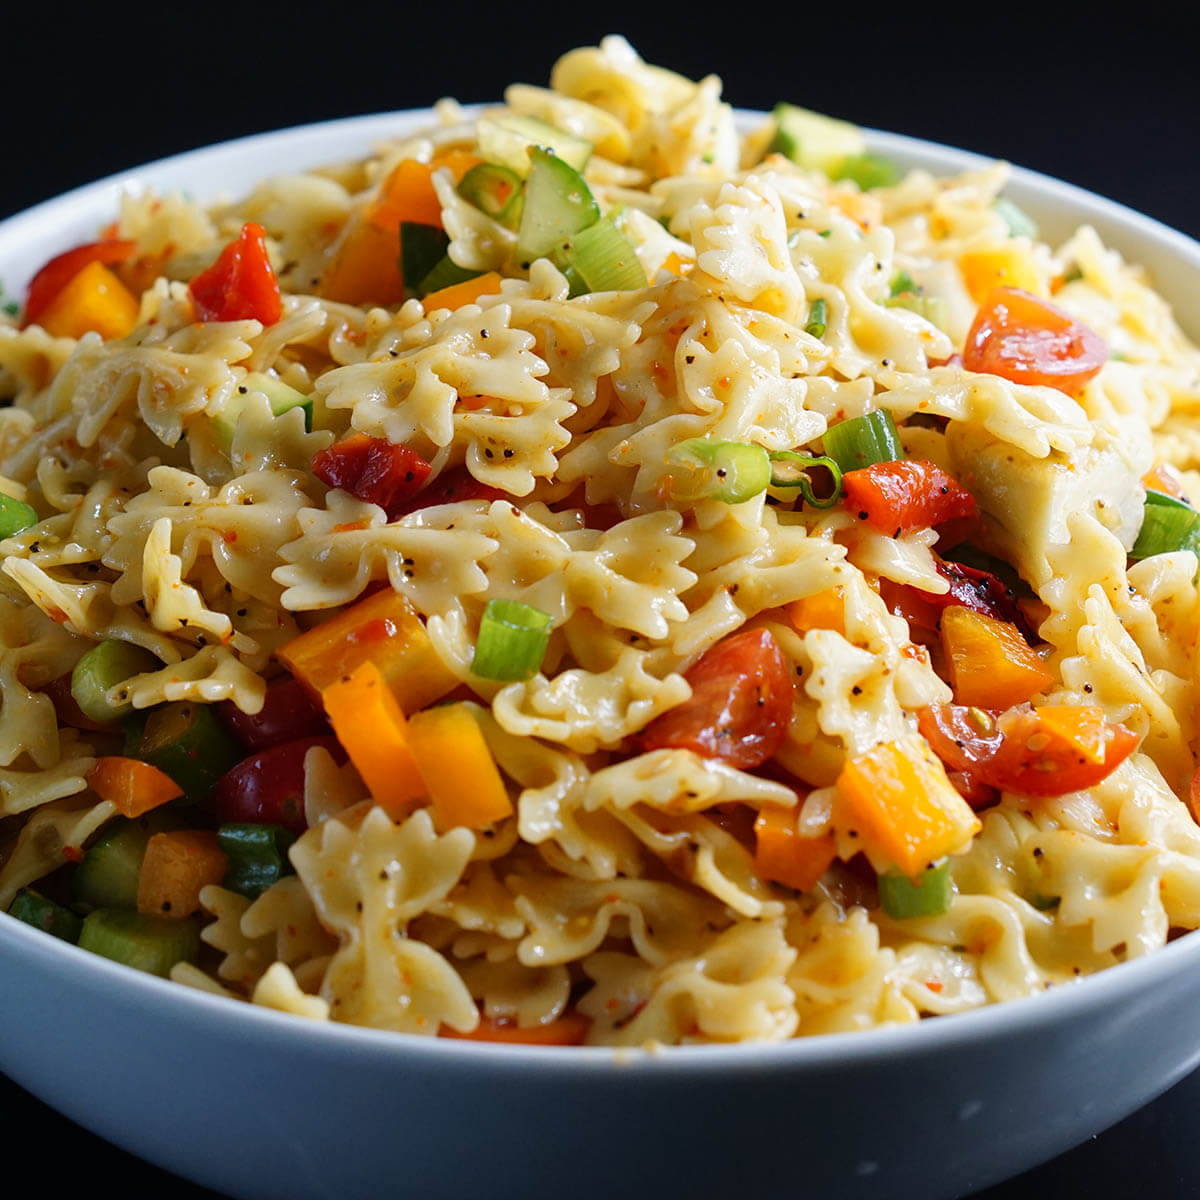 Bow Tie Pasta salad for a holiday side dish.